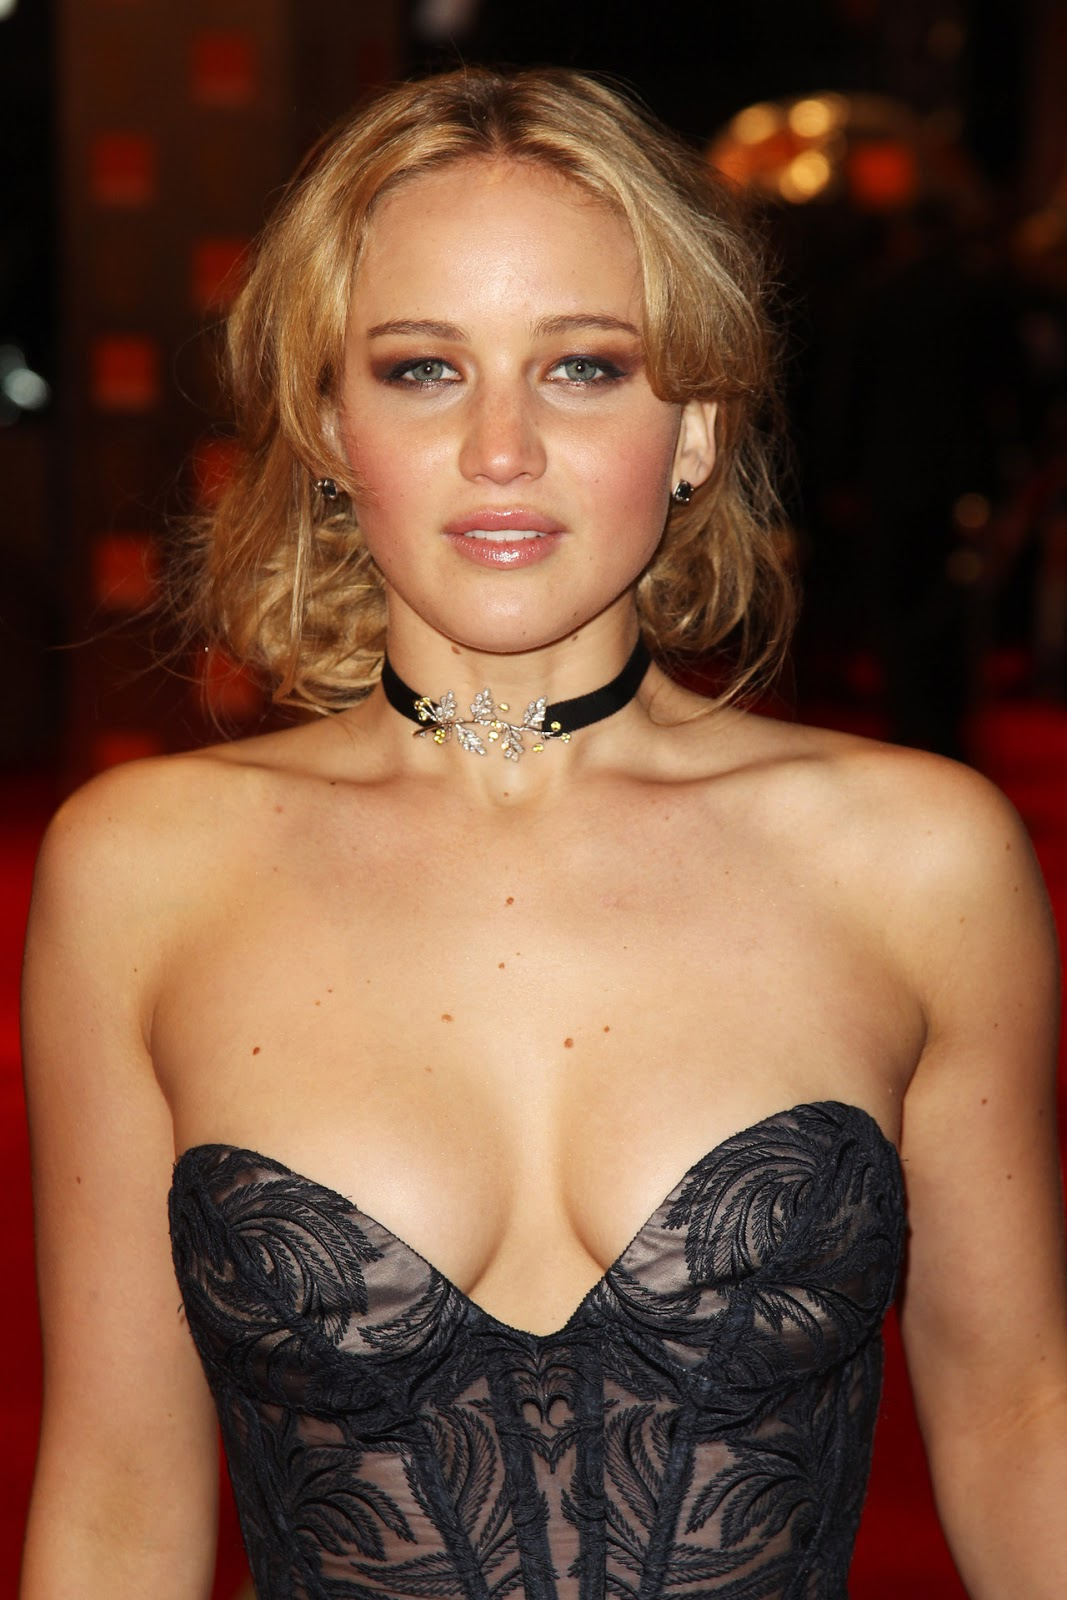 Jennifer-Lawrence-067.jpg